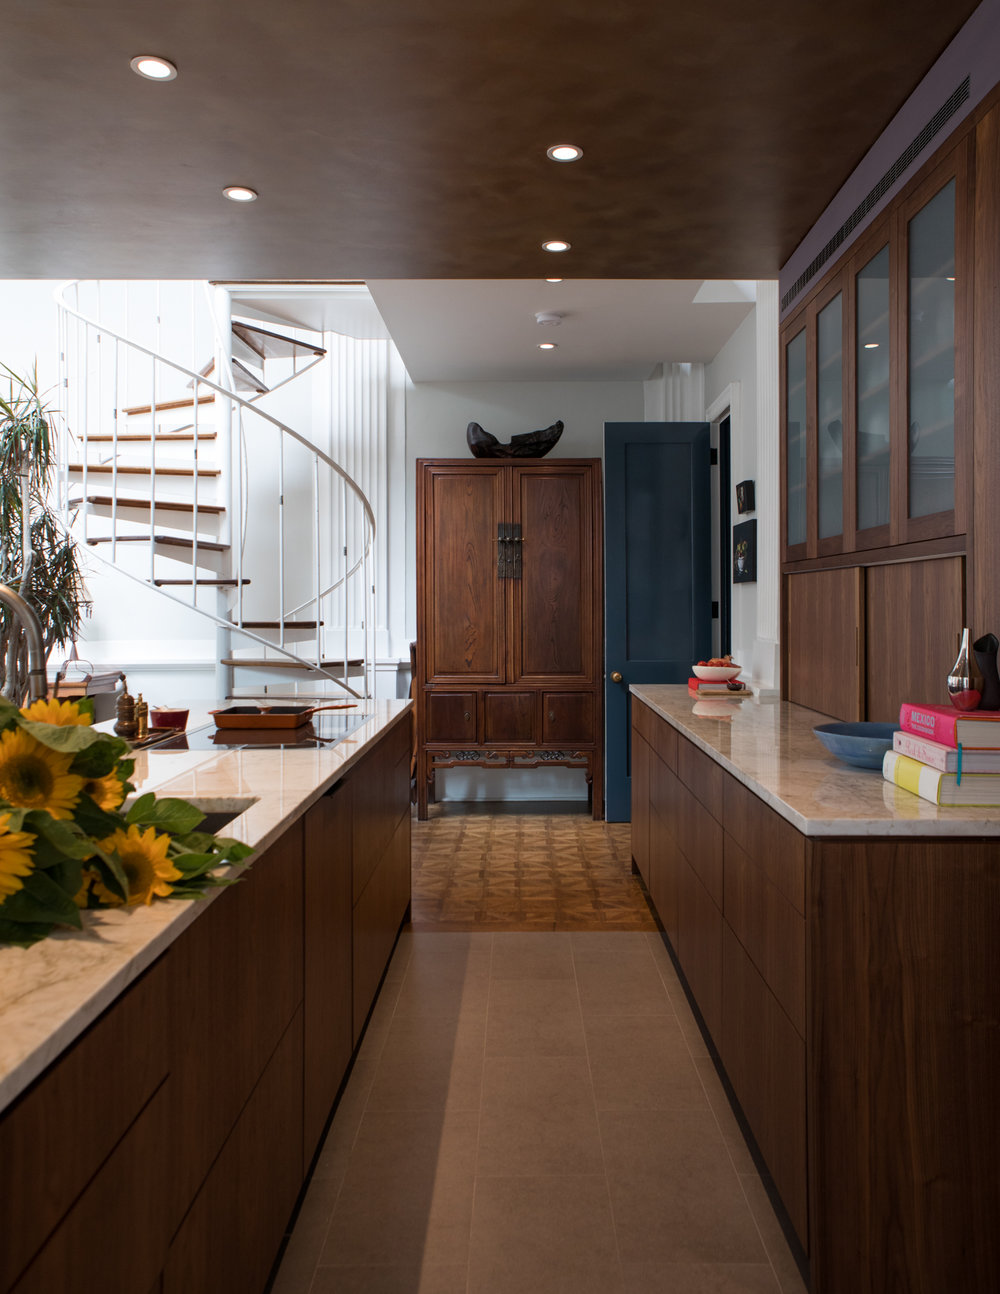 Kitchen East - Setting new finishes into historic context